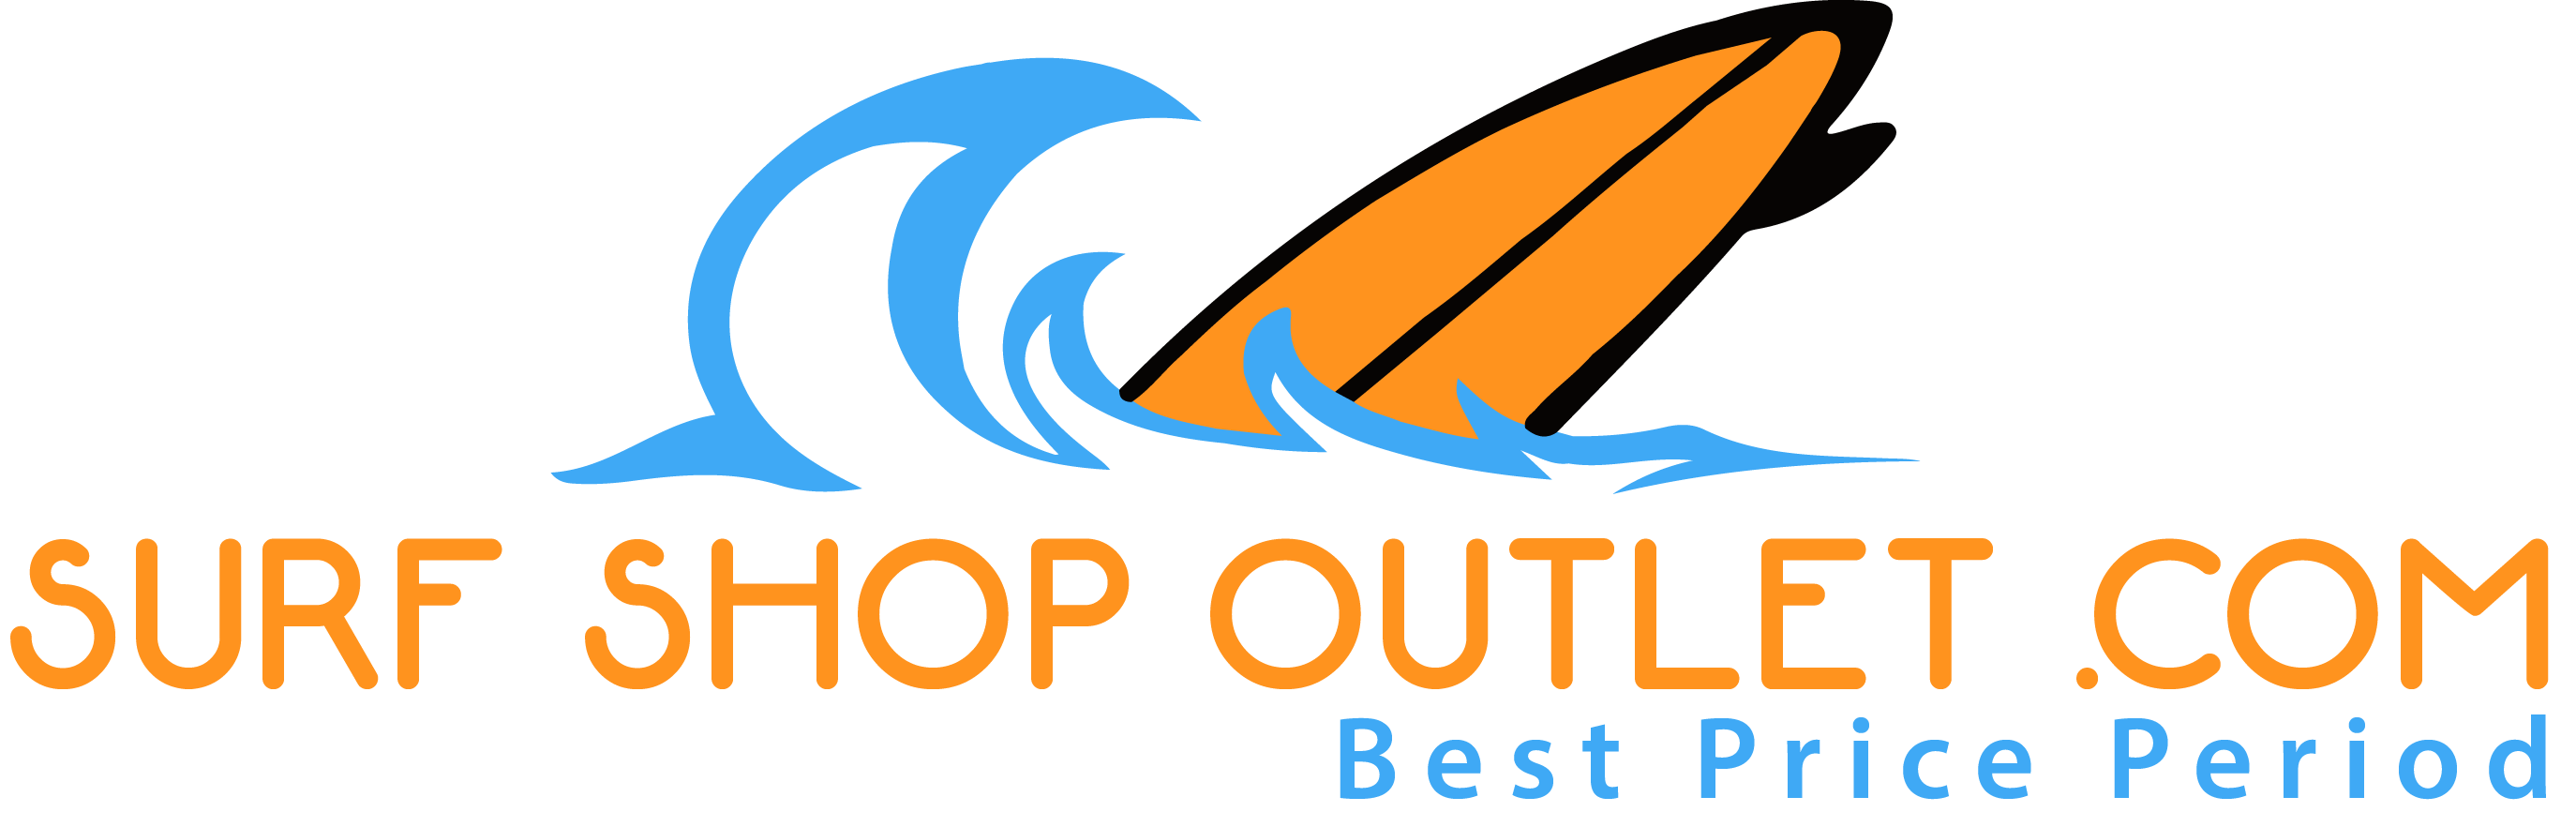 SURF SHOP OUTLET